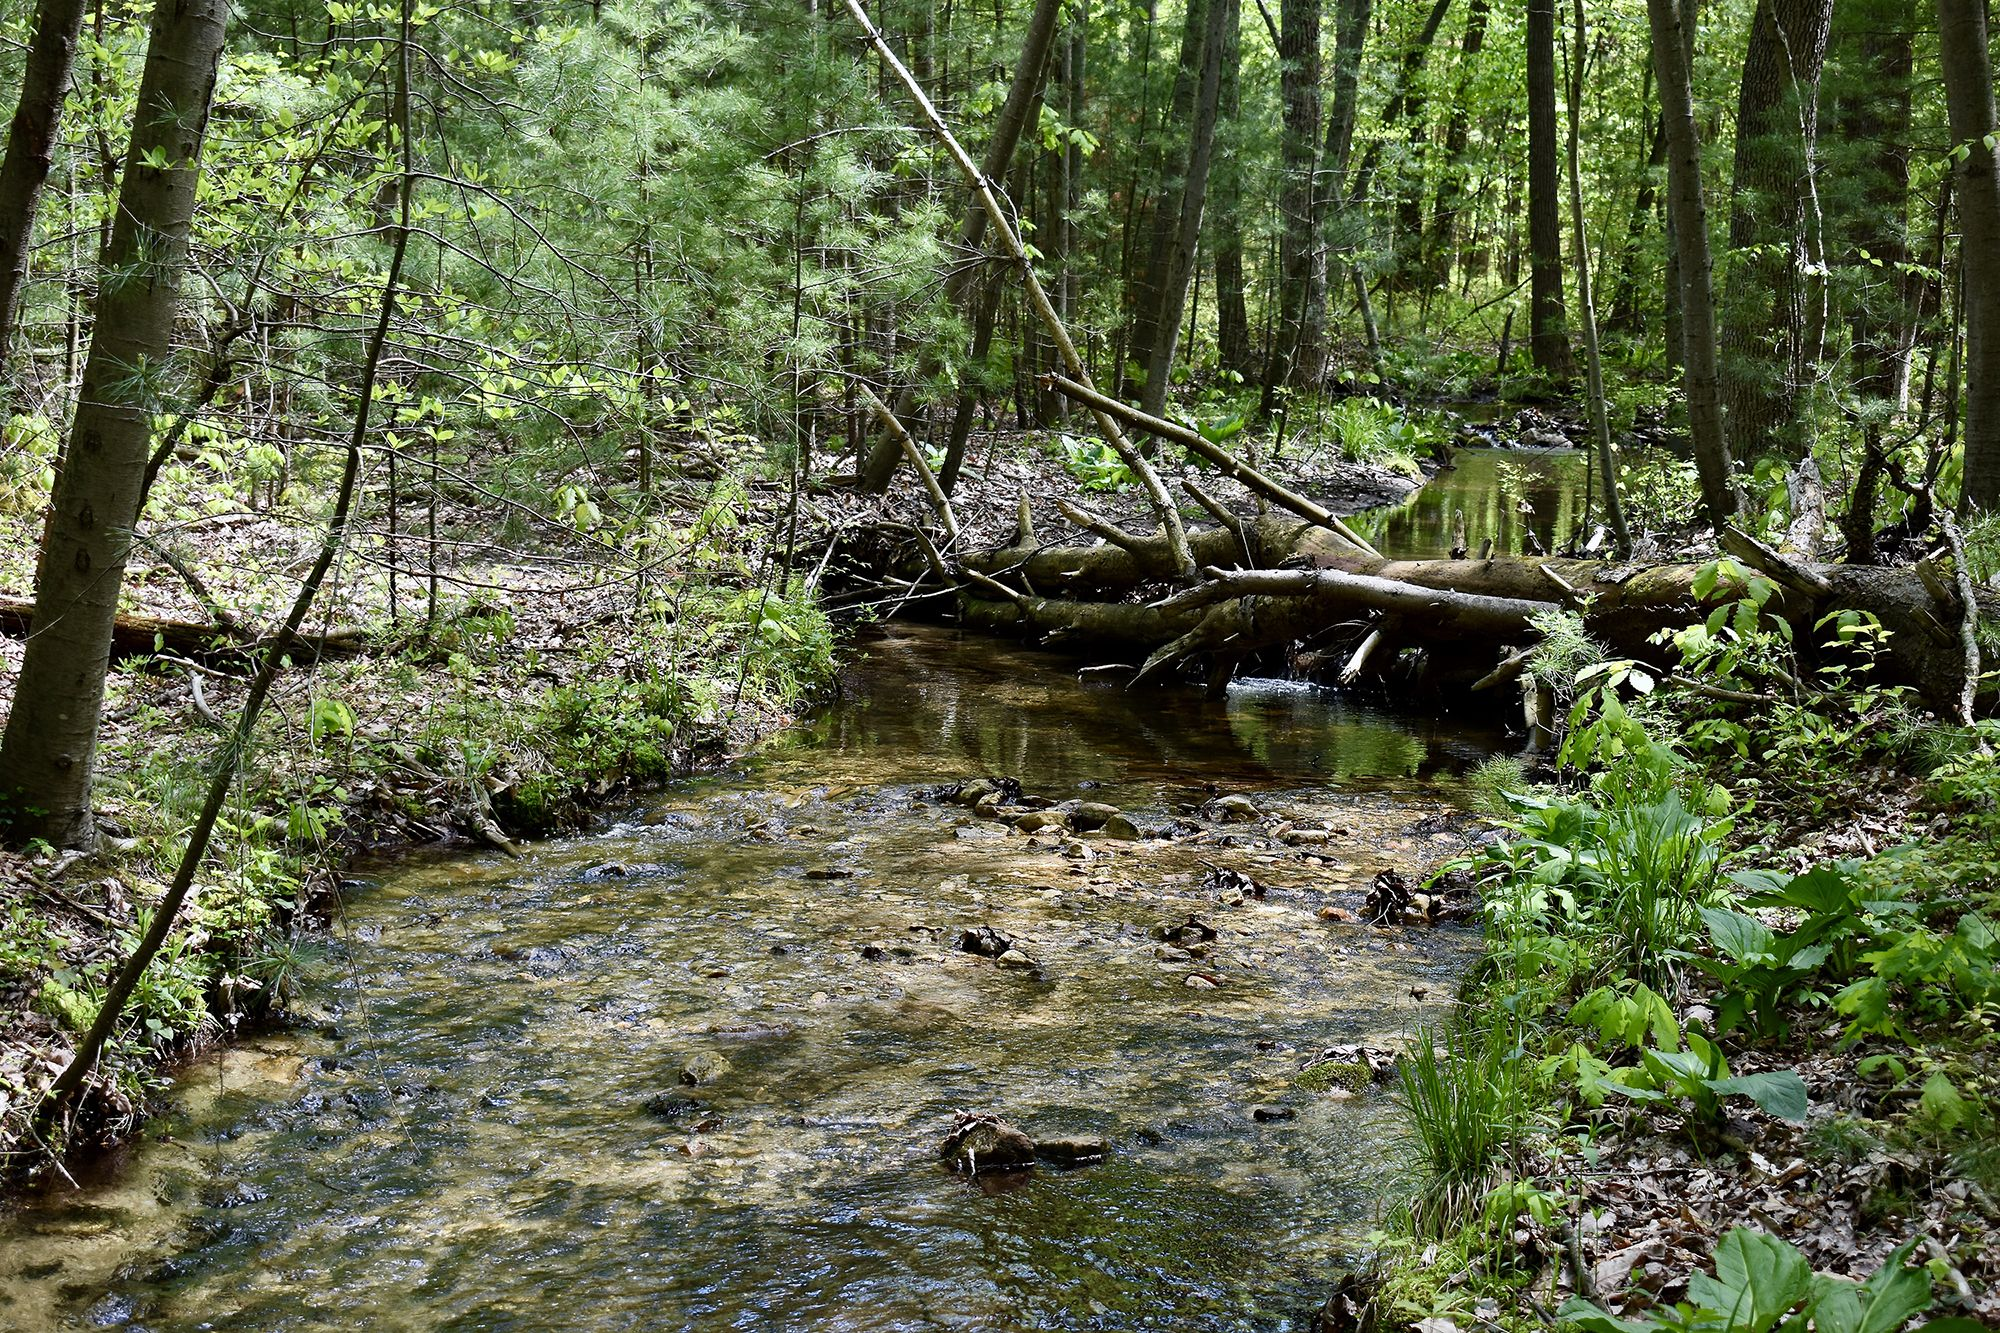 A wide mountain stream meanders through a thick forest. A large tree has fallen across the stream forming a natural bridge. Water swirls around the rocks in the stream bed.